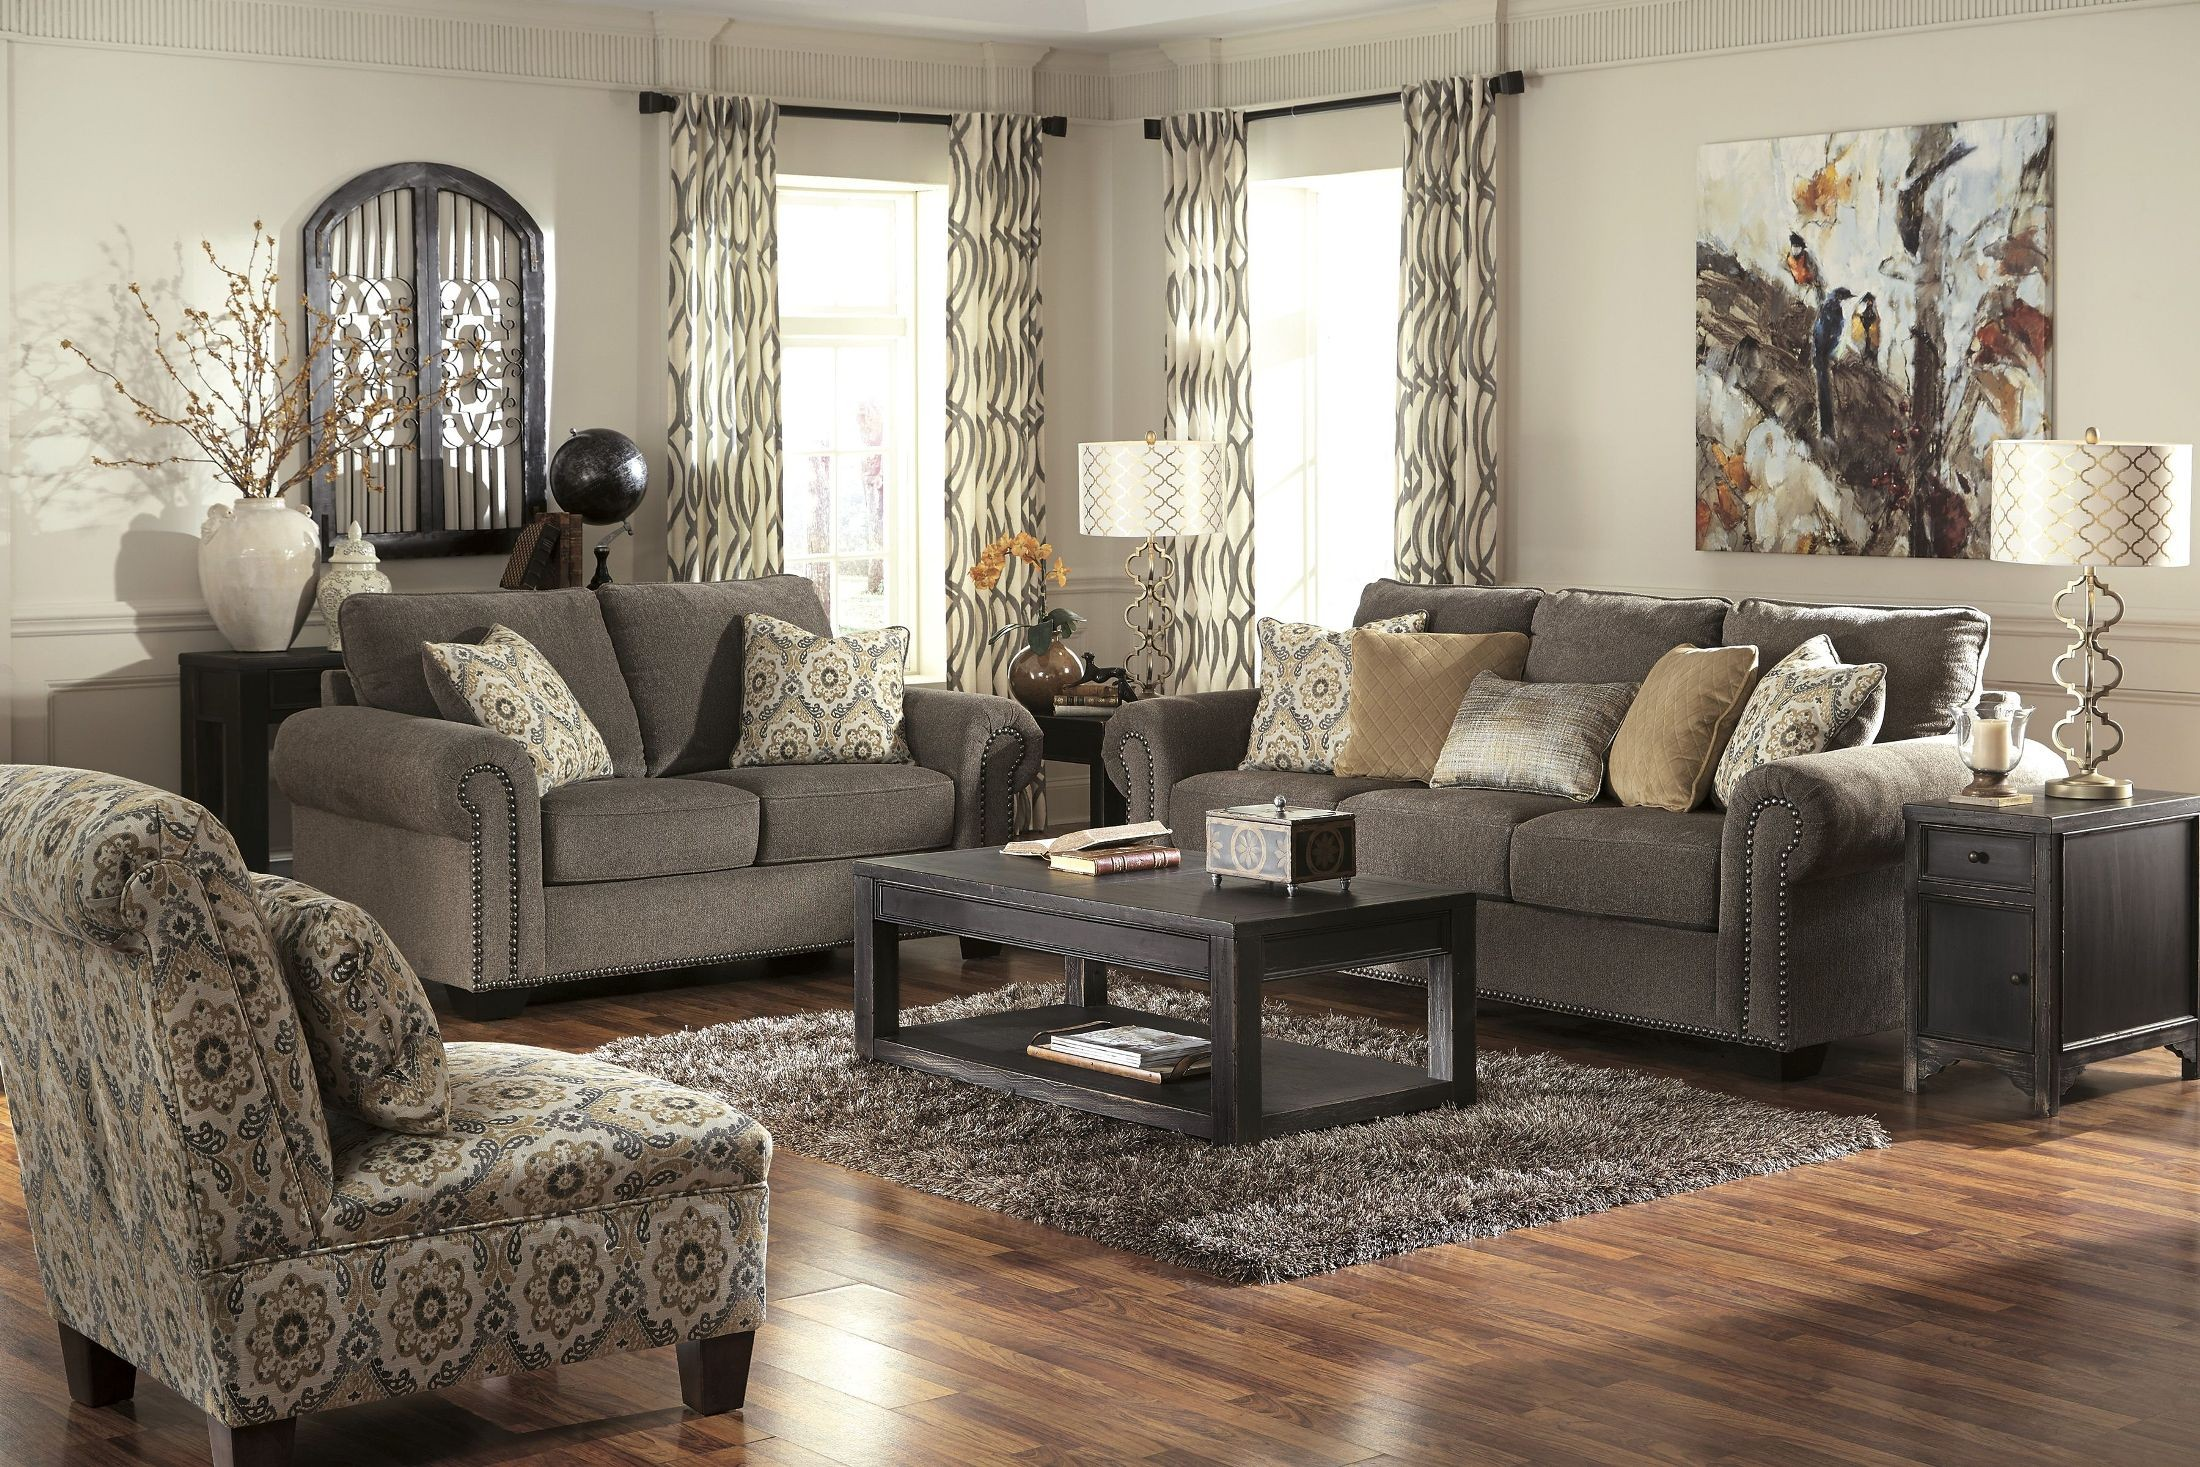 Emelen Alloy Living Room Set From Ashley 45600 35 38